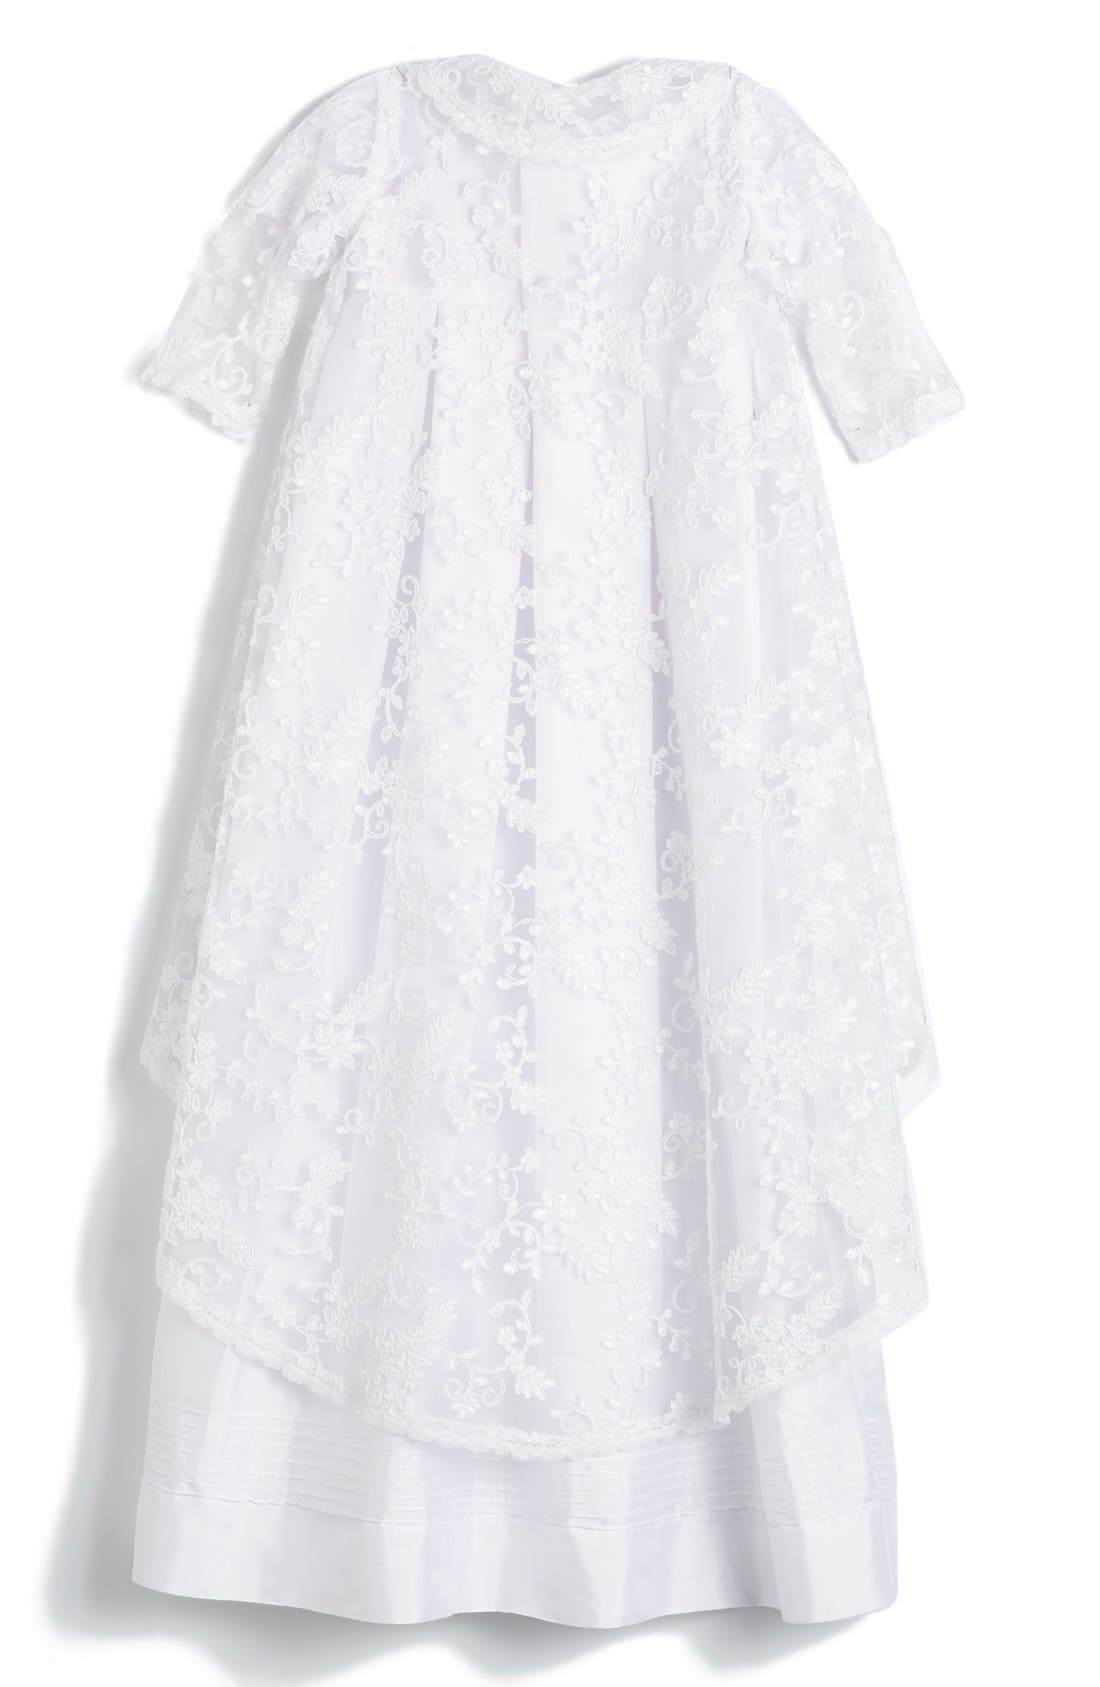 'Renaissance' Christening Gown & Bonnet,                             Alternate thumbnail 2, color,                             WHITE